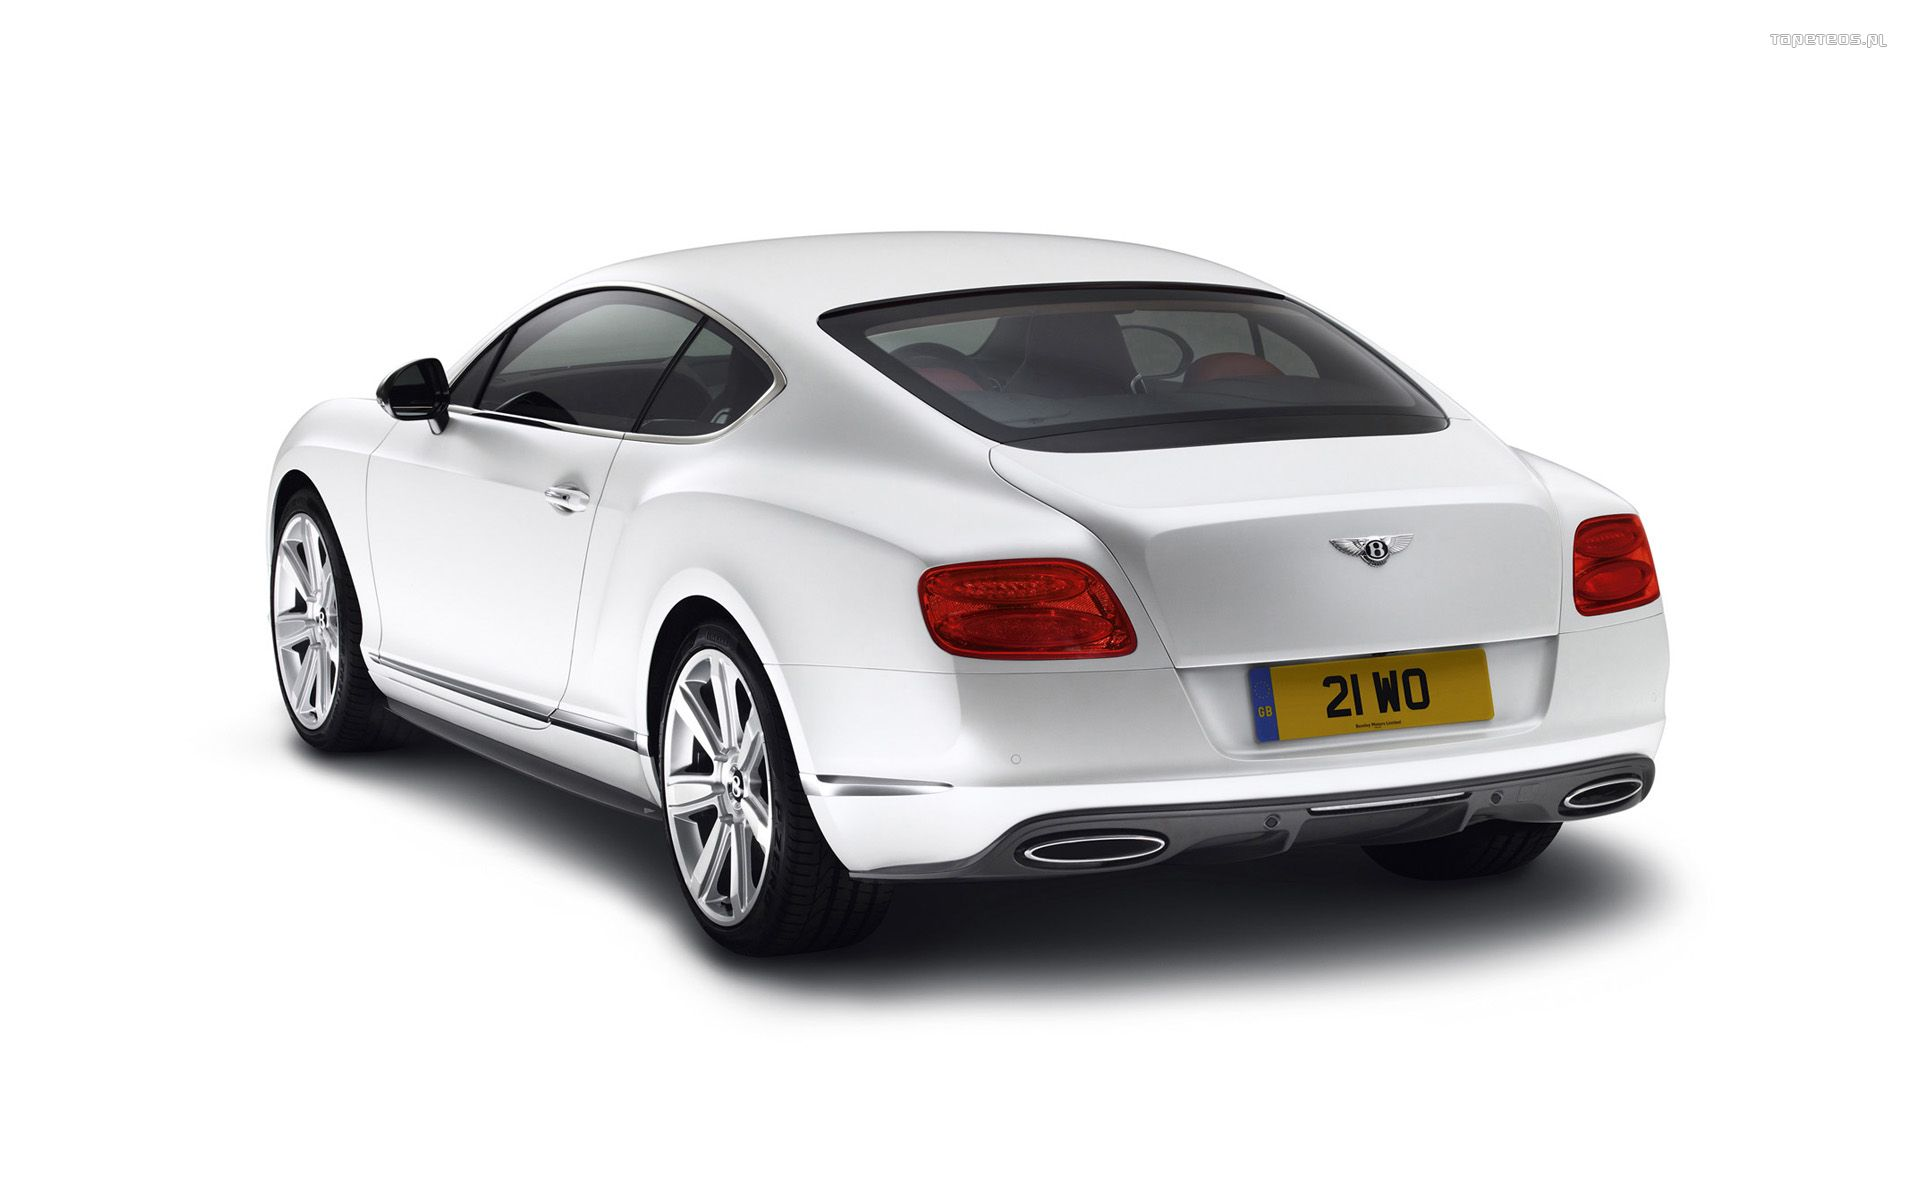 2012 Bentley Continental GT Mulliner Styling 002